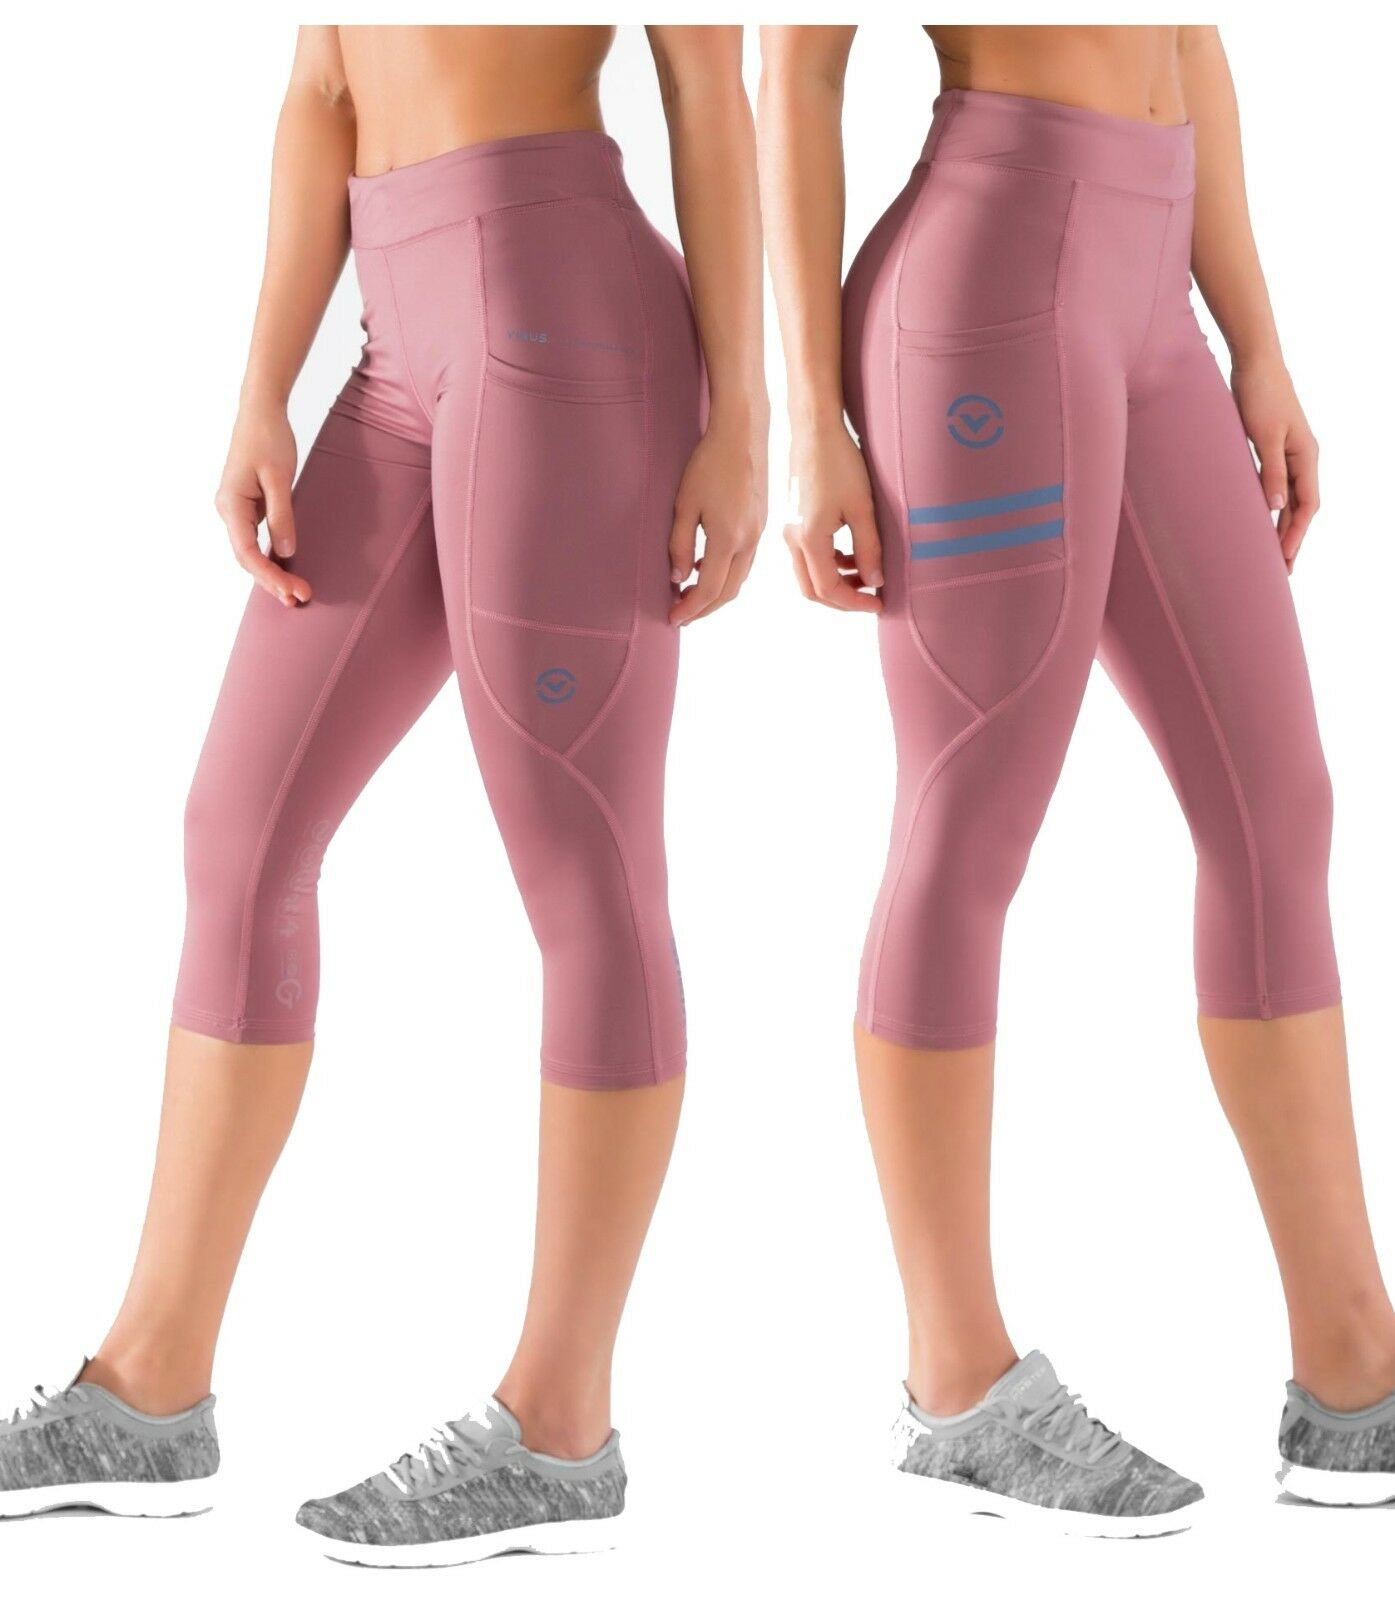 Virus DASie Eco24 Power Tech Schnitt Hose Indigo Braun Crossfit, Yoga,